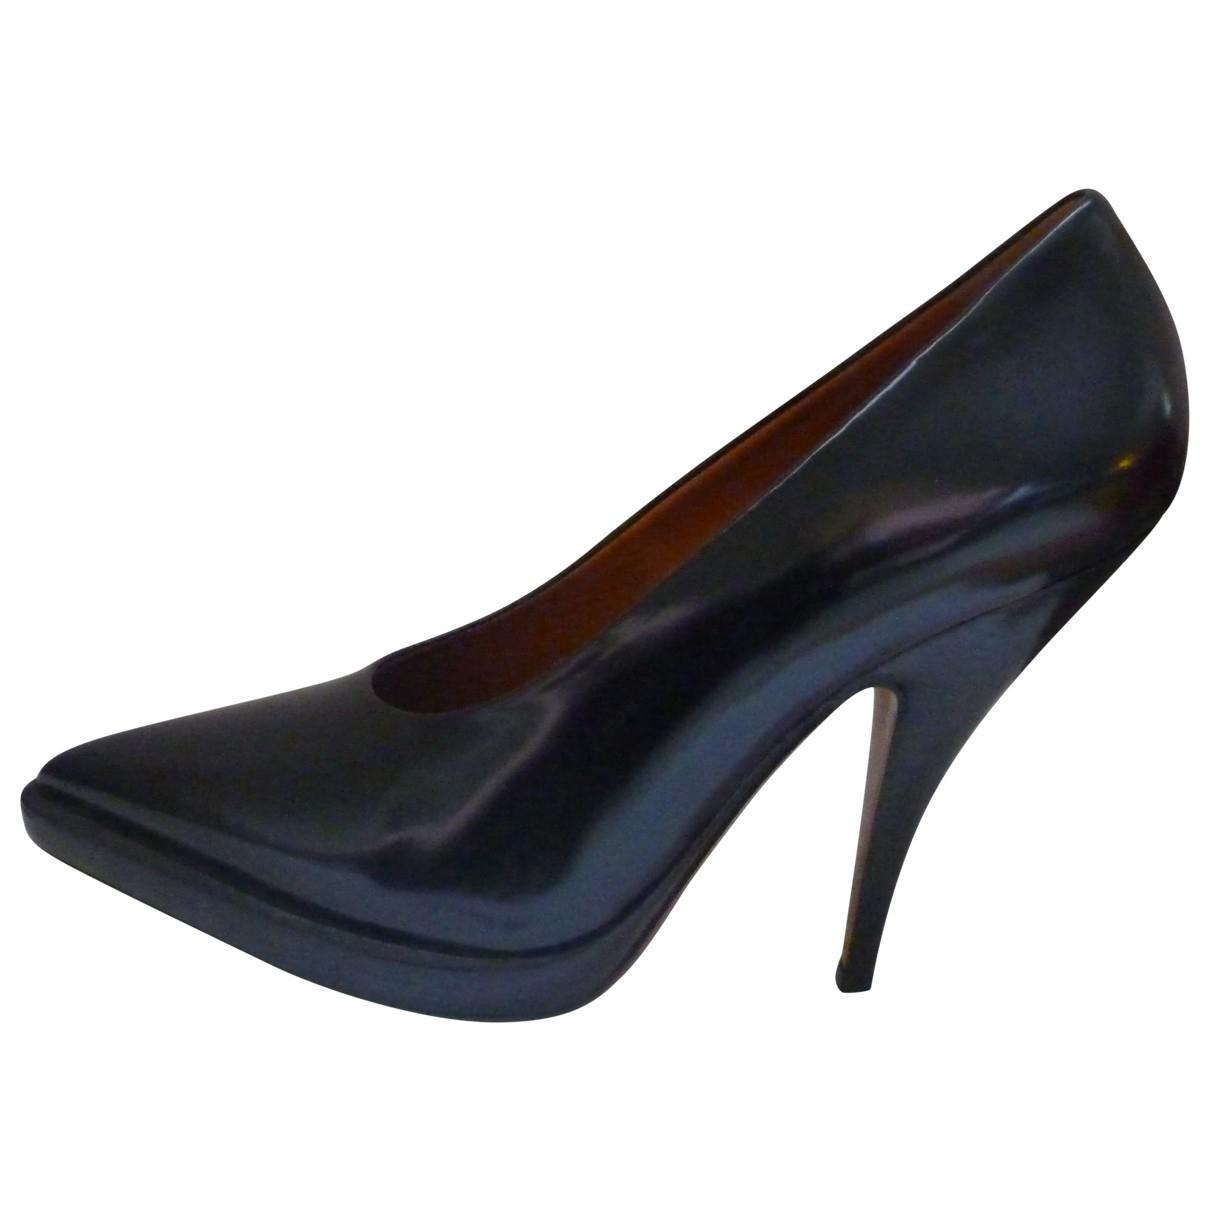 Pre-owned - Patent leather heels Celine 0lmBNnTNuC